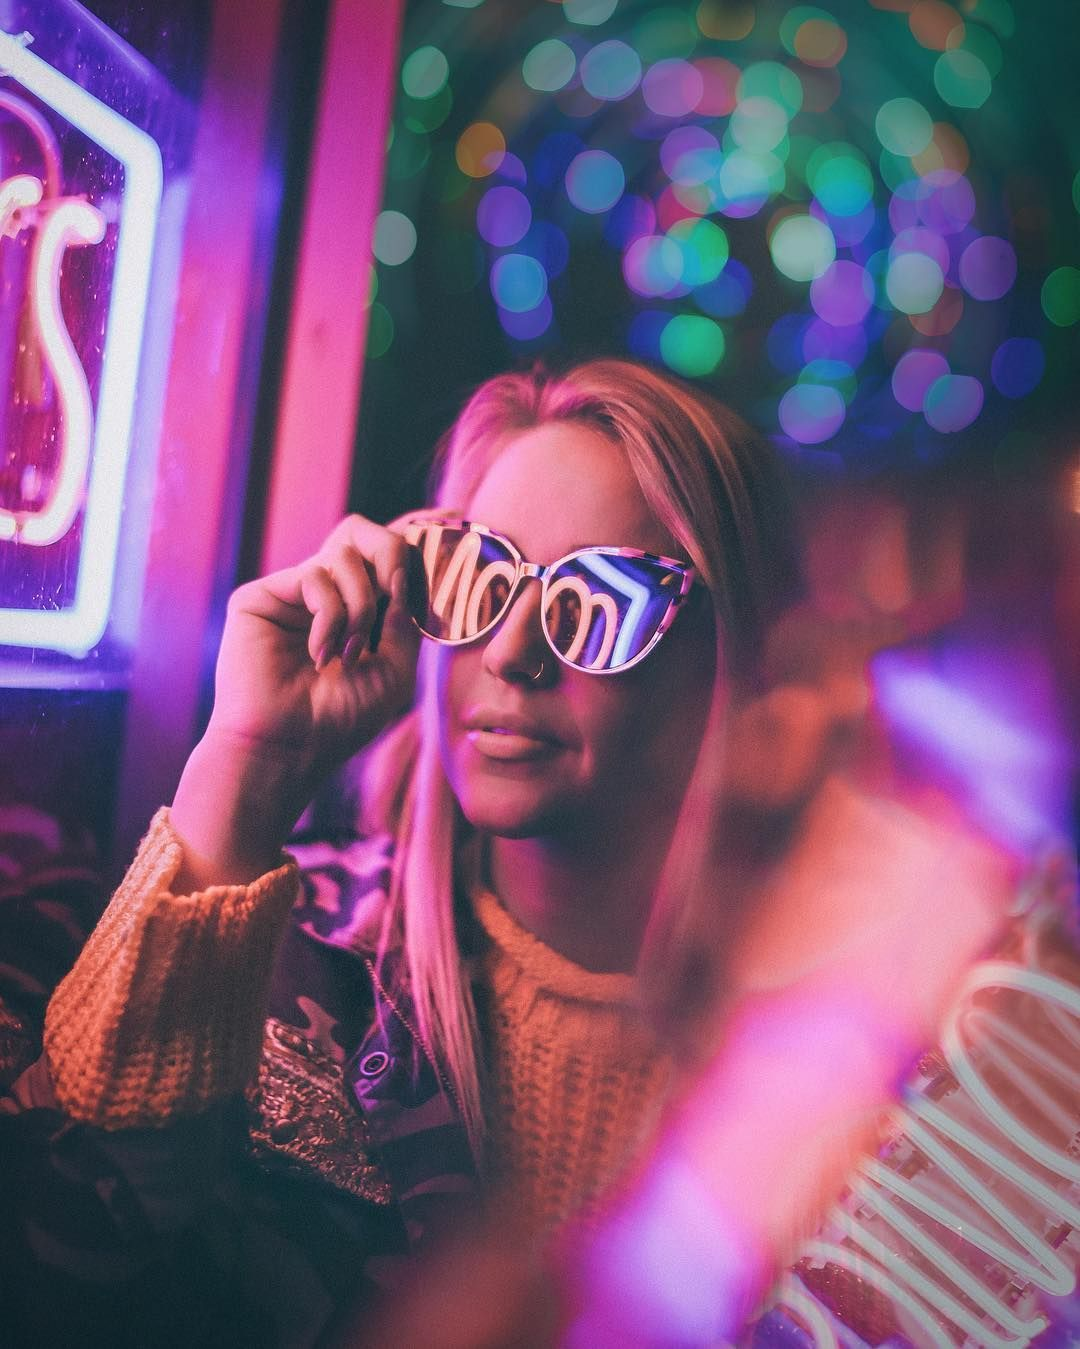 Vibrant and Moody Lifestyle Portrait Photography by The Dreamers Eye | Night photography portrait, Neon photography, Neon photoshoot